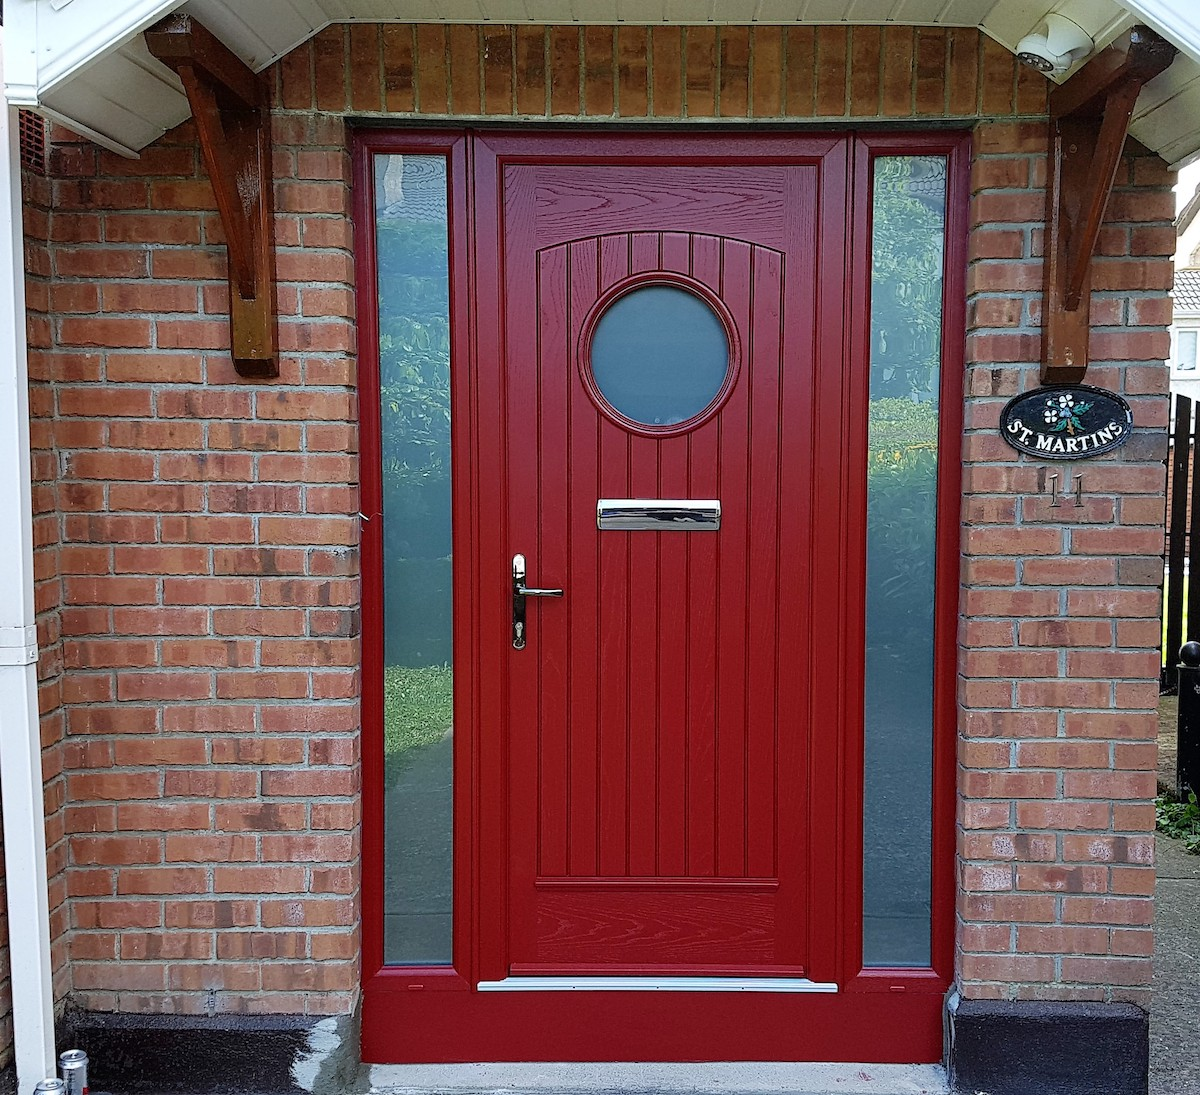 Viking door with plain Satinized glass & Viking door with plain Satinized glass | Brealey Windows \u0026 Doors Ltd